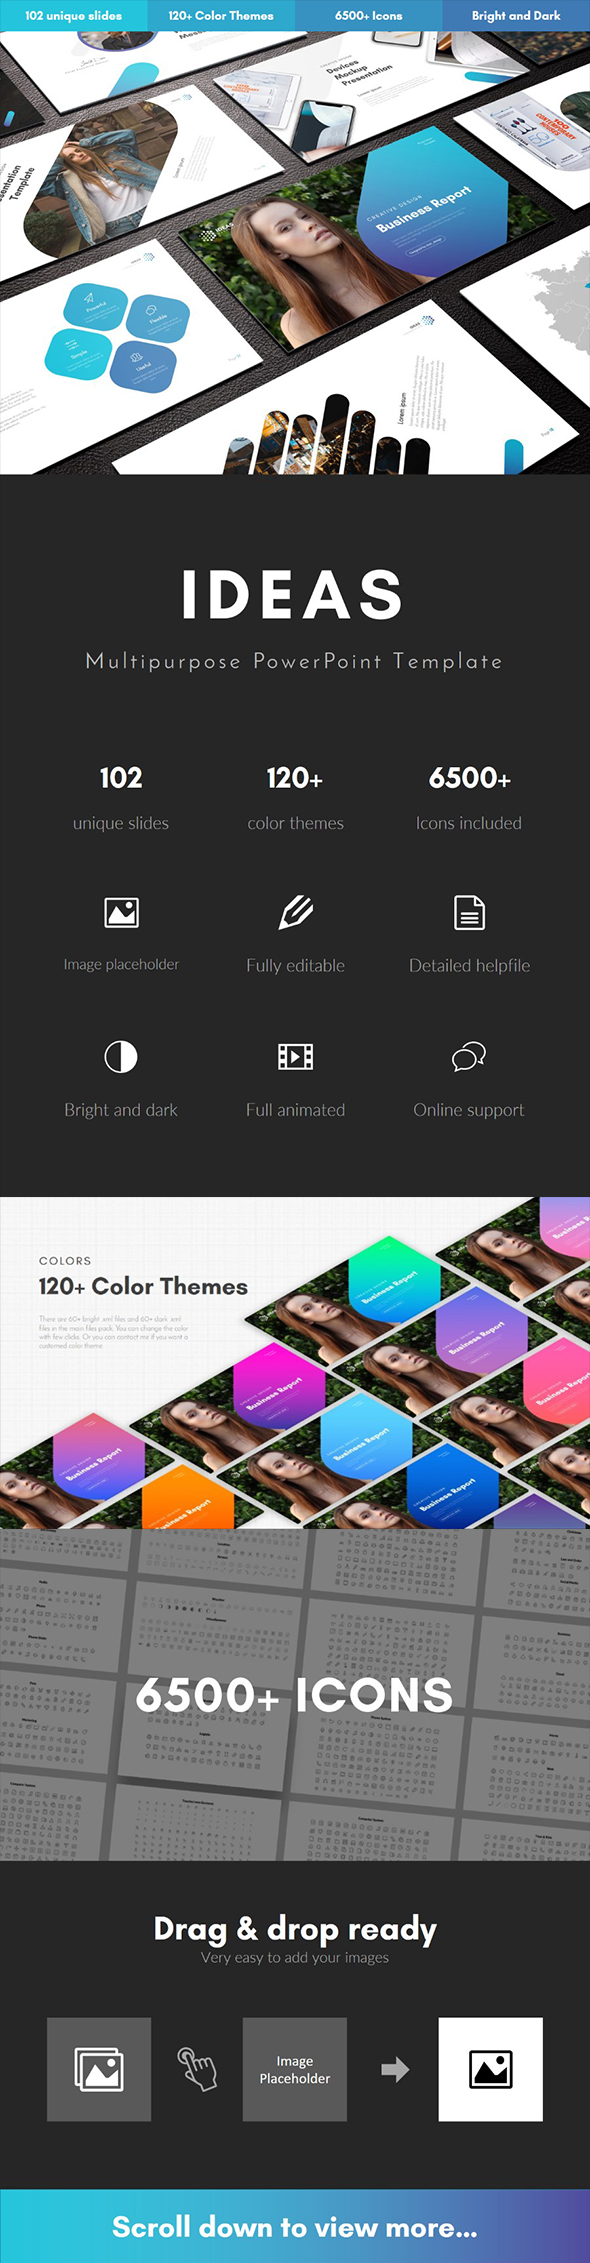 Ideas Multipurpose PowerPoint Template - Business PowerPoint Templates